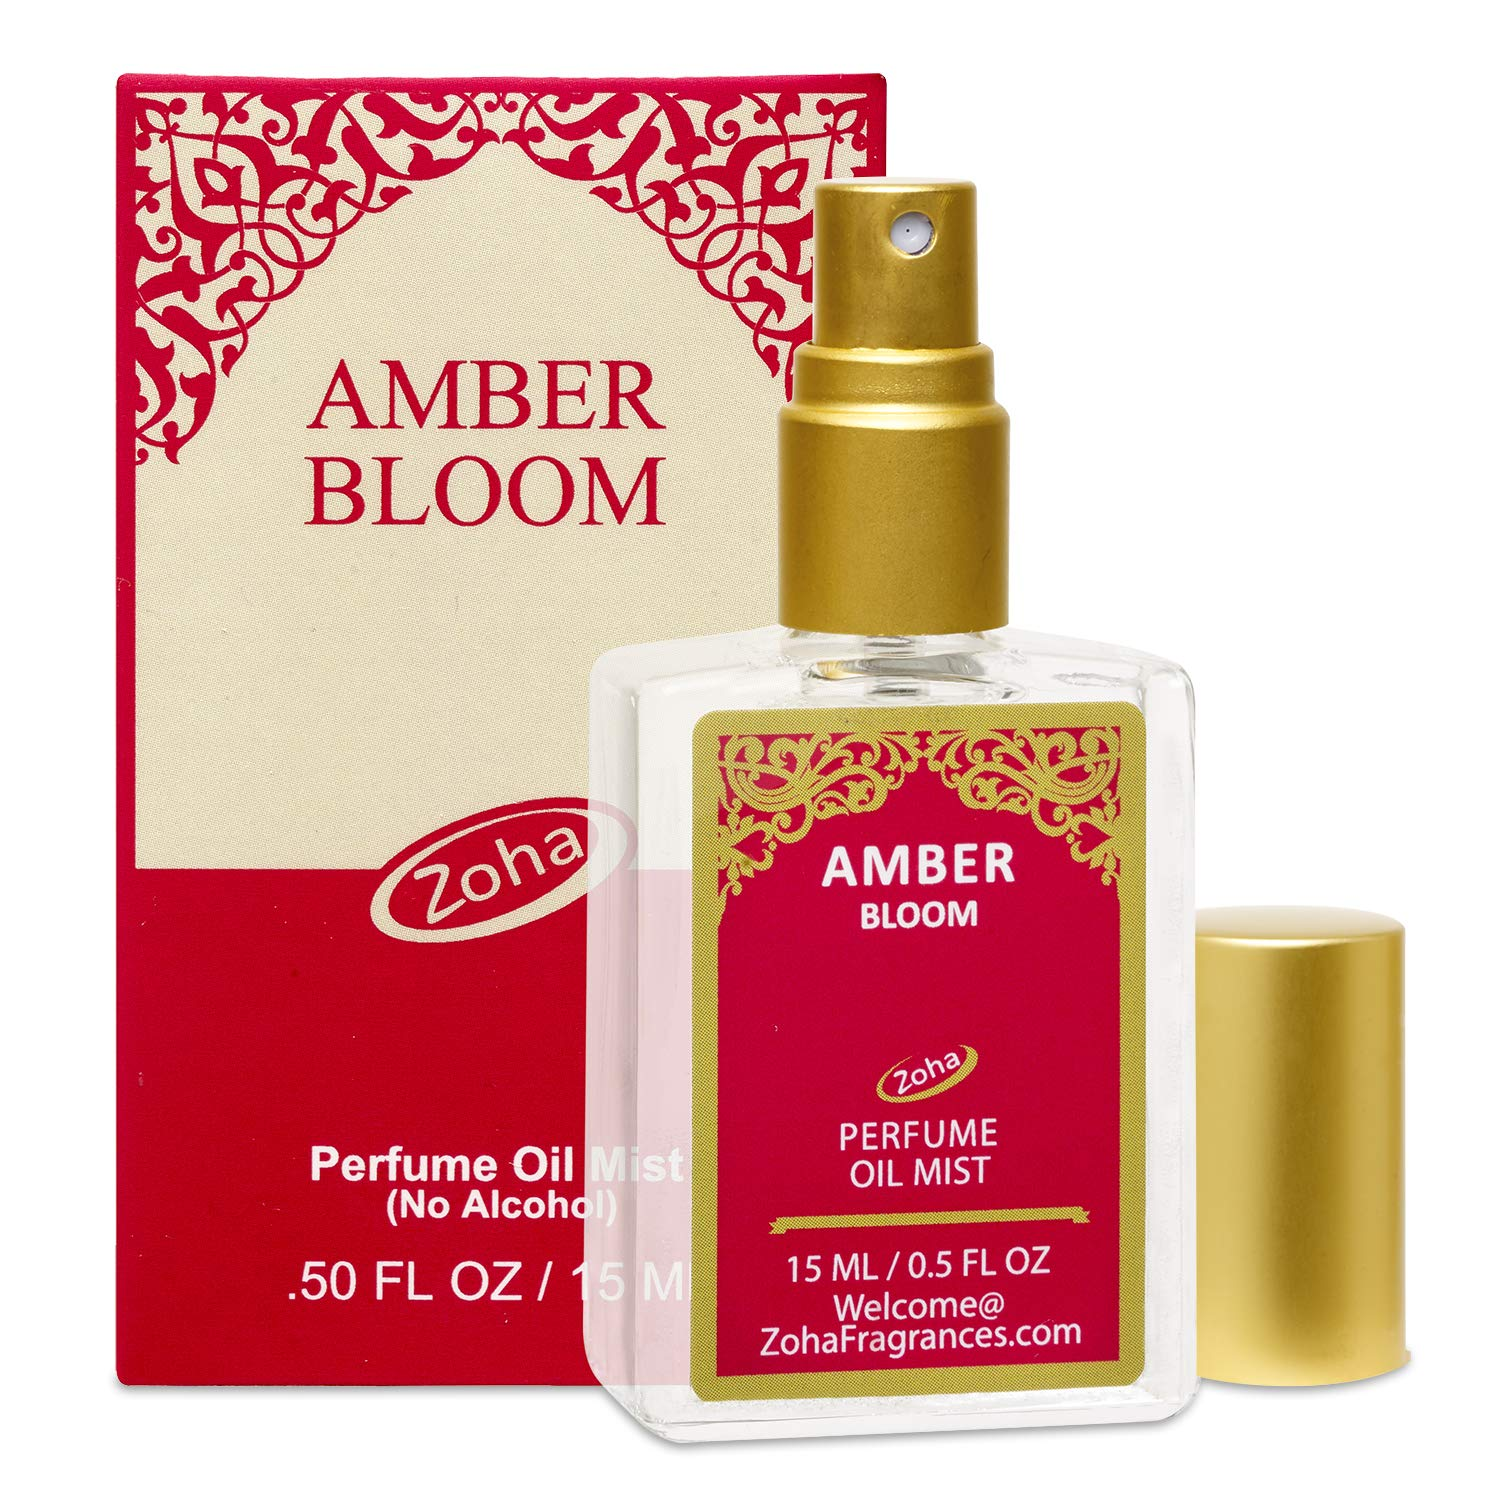 Amber Bloom Perfume Oil Mist (No Alcohol) Amber Oil Fragrance - Essential Oils and Perfumes for Women and Men by Zoha Fragrances, 15 ml / 0.50 fl Oz by Zoha